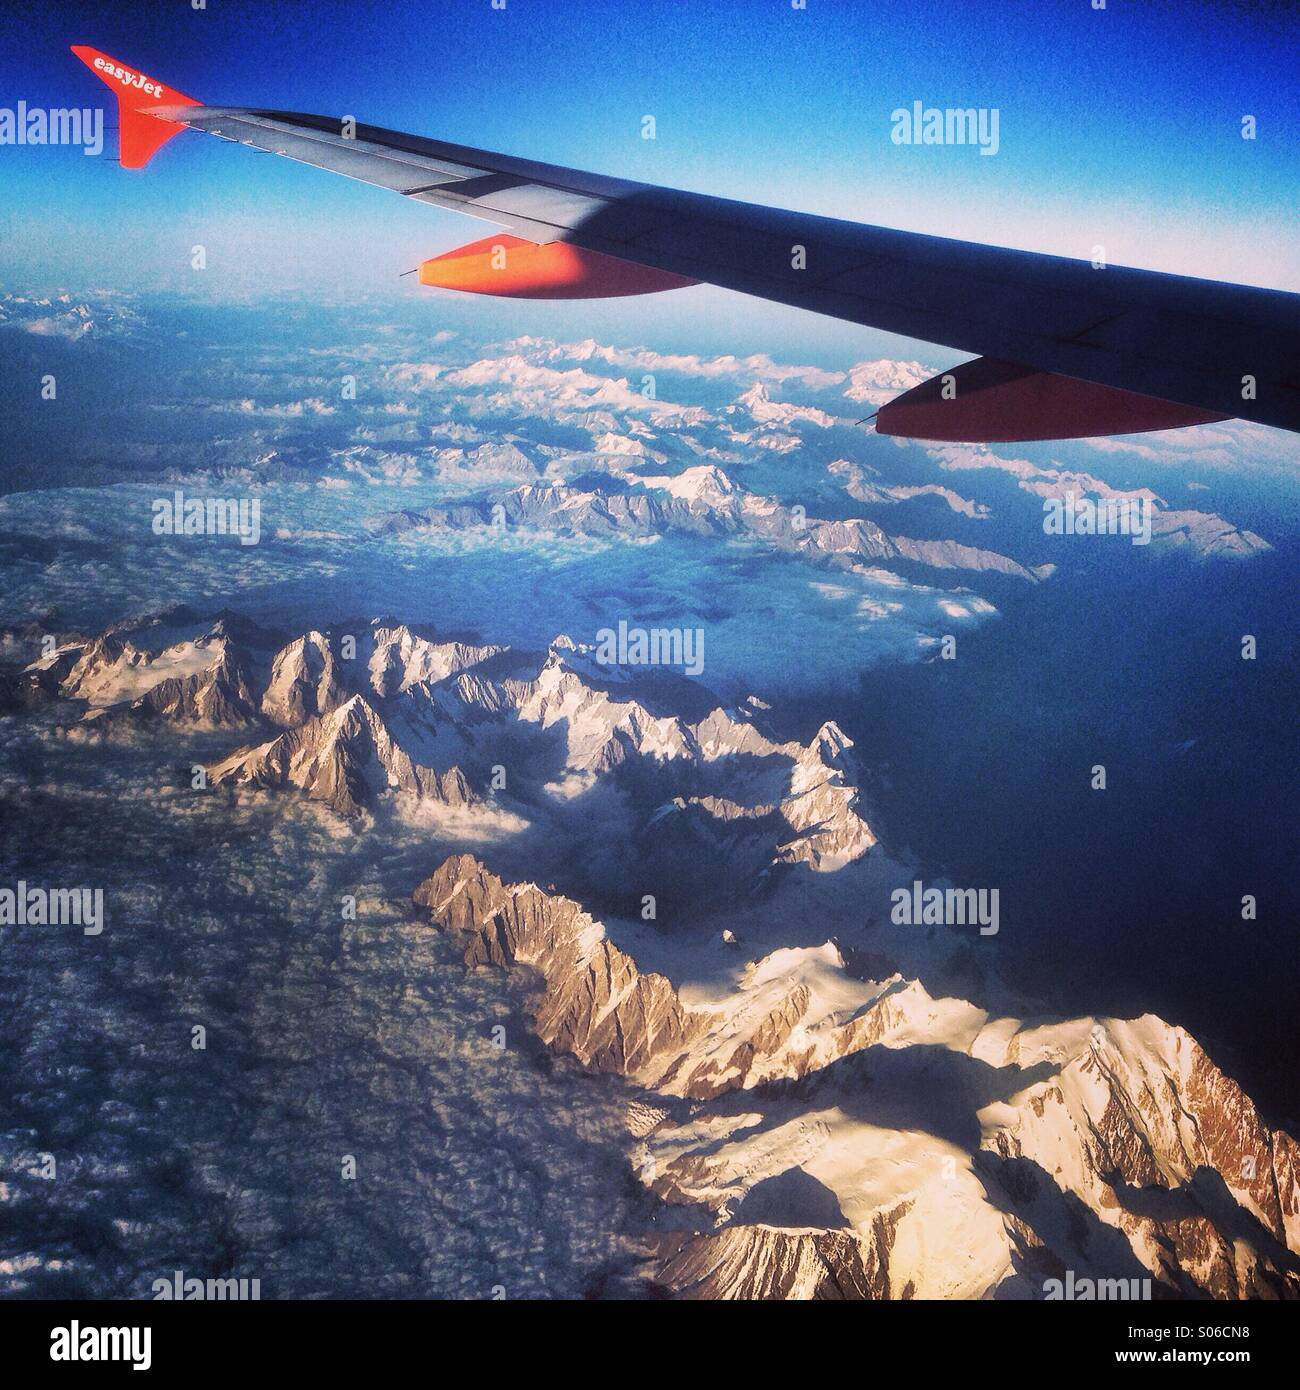 View of the Alps with Montblanc from an aeroplane window - Stock Image